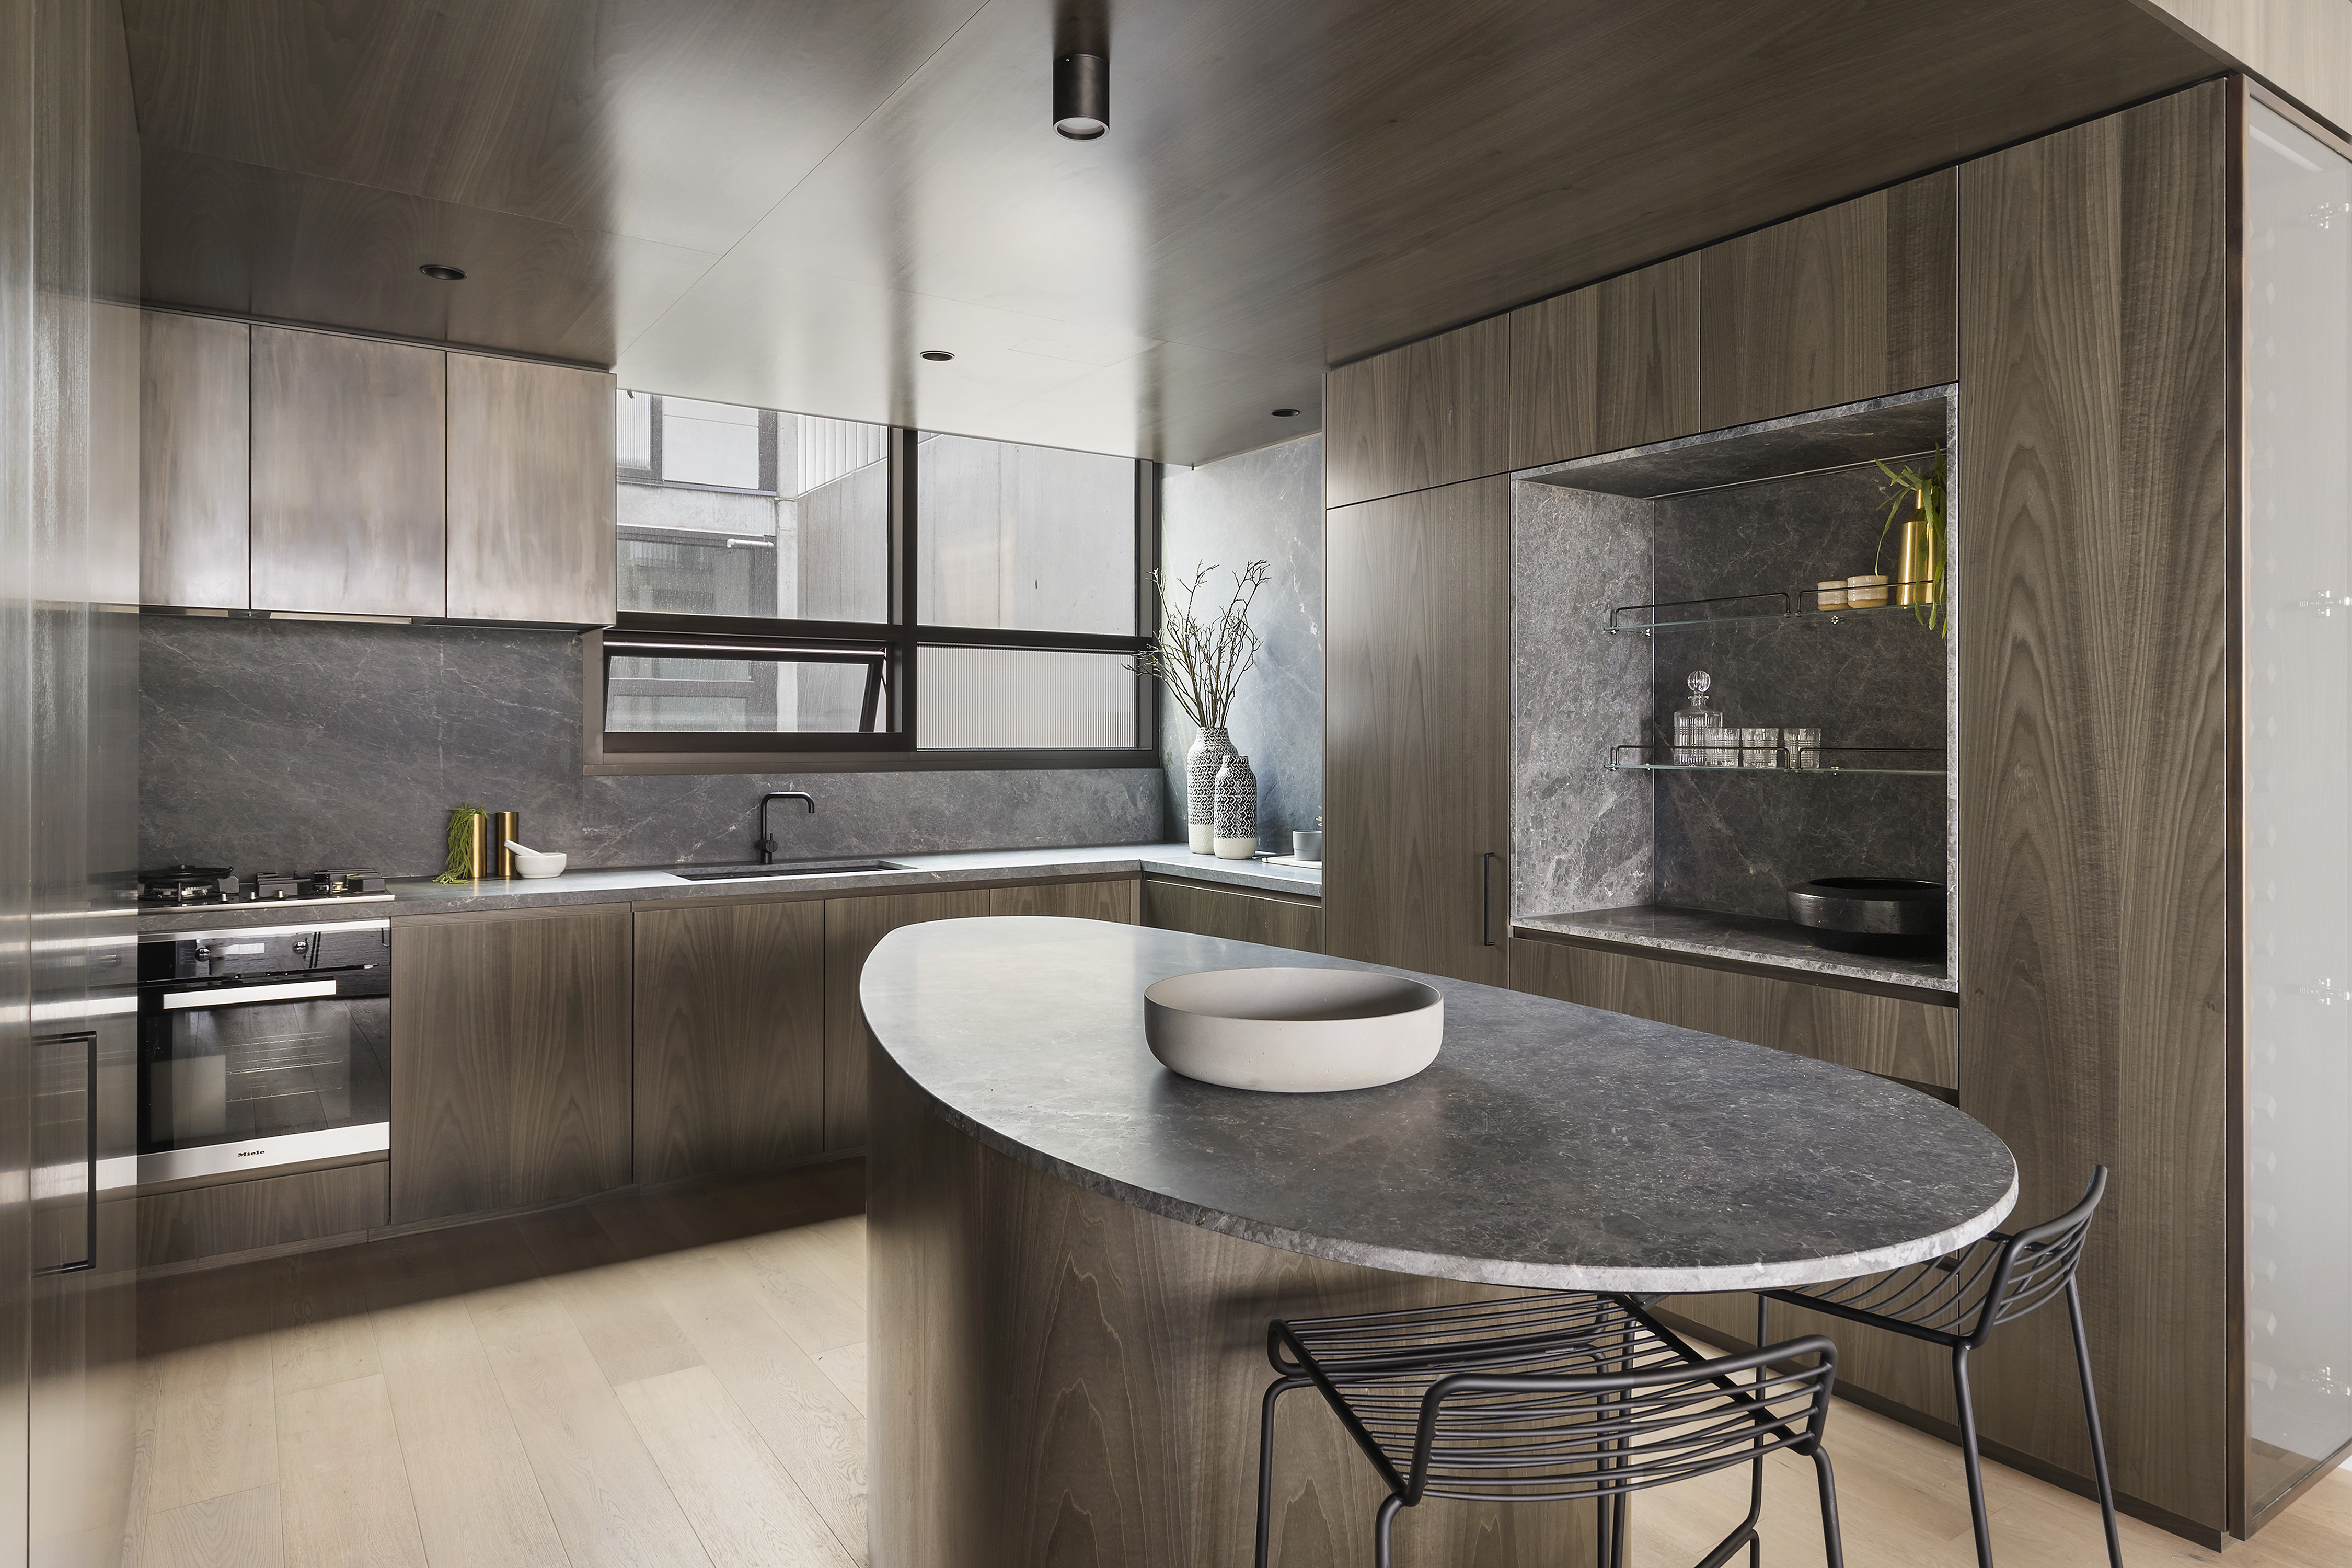 405-9-johnston-street-port-melbourne-student-accommodation-Melbourne-Kitchen-With-Dining-Area-Unilodgers